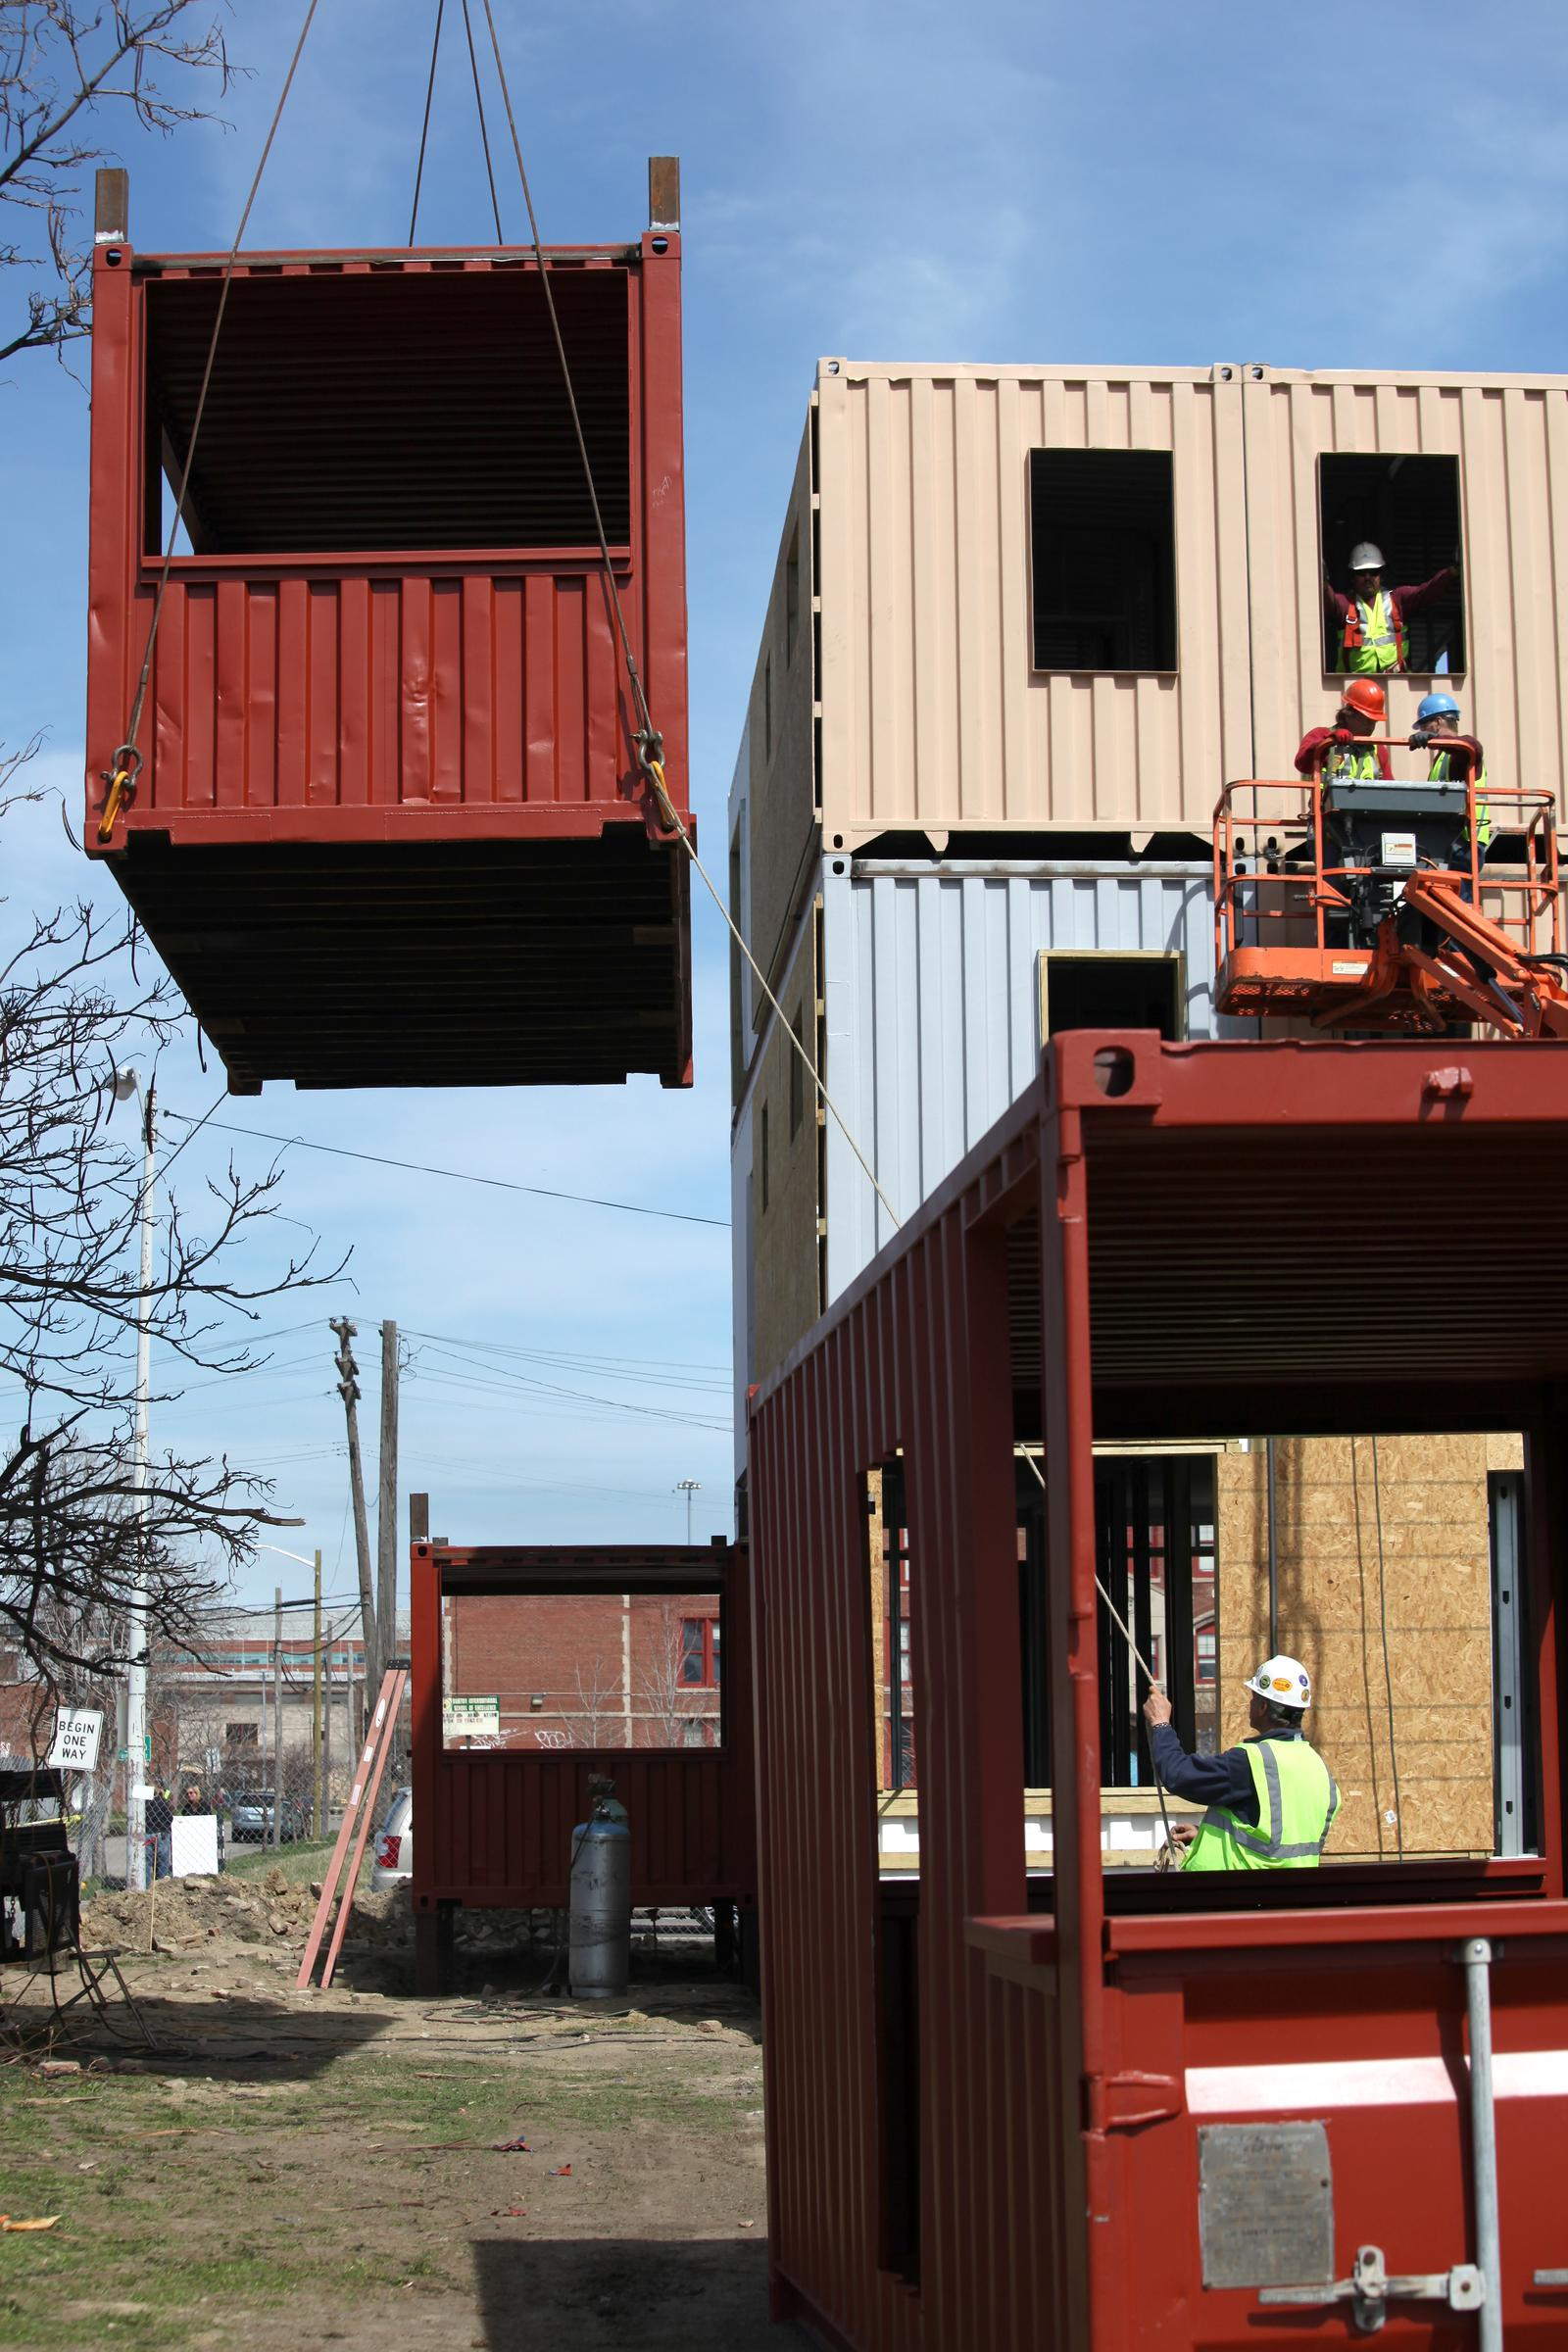 construction starts on shipping container housing effort